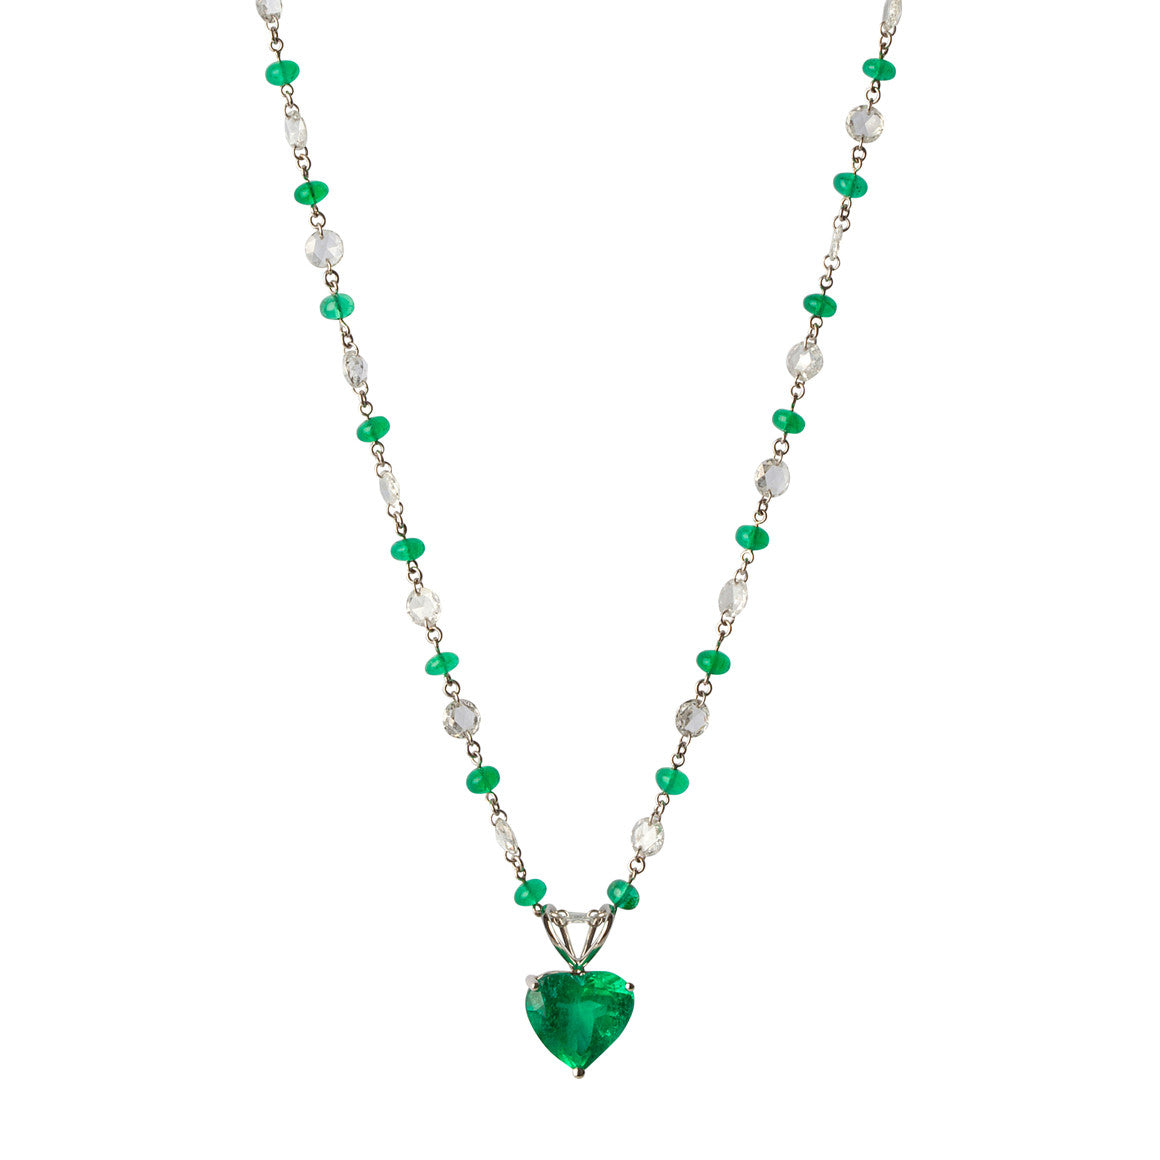 Emerald heart pendant diamond necklace chantal diamonds chantal diamonds emerald heart pendant and diamond necklace aloadofball Images